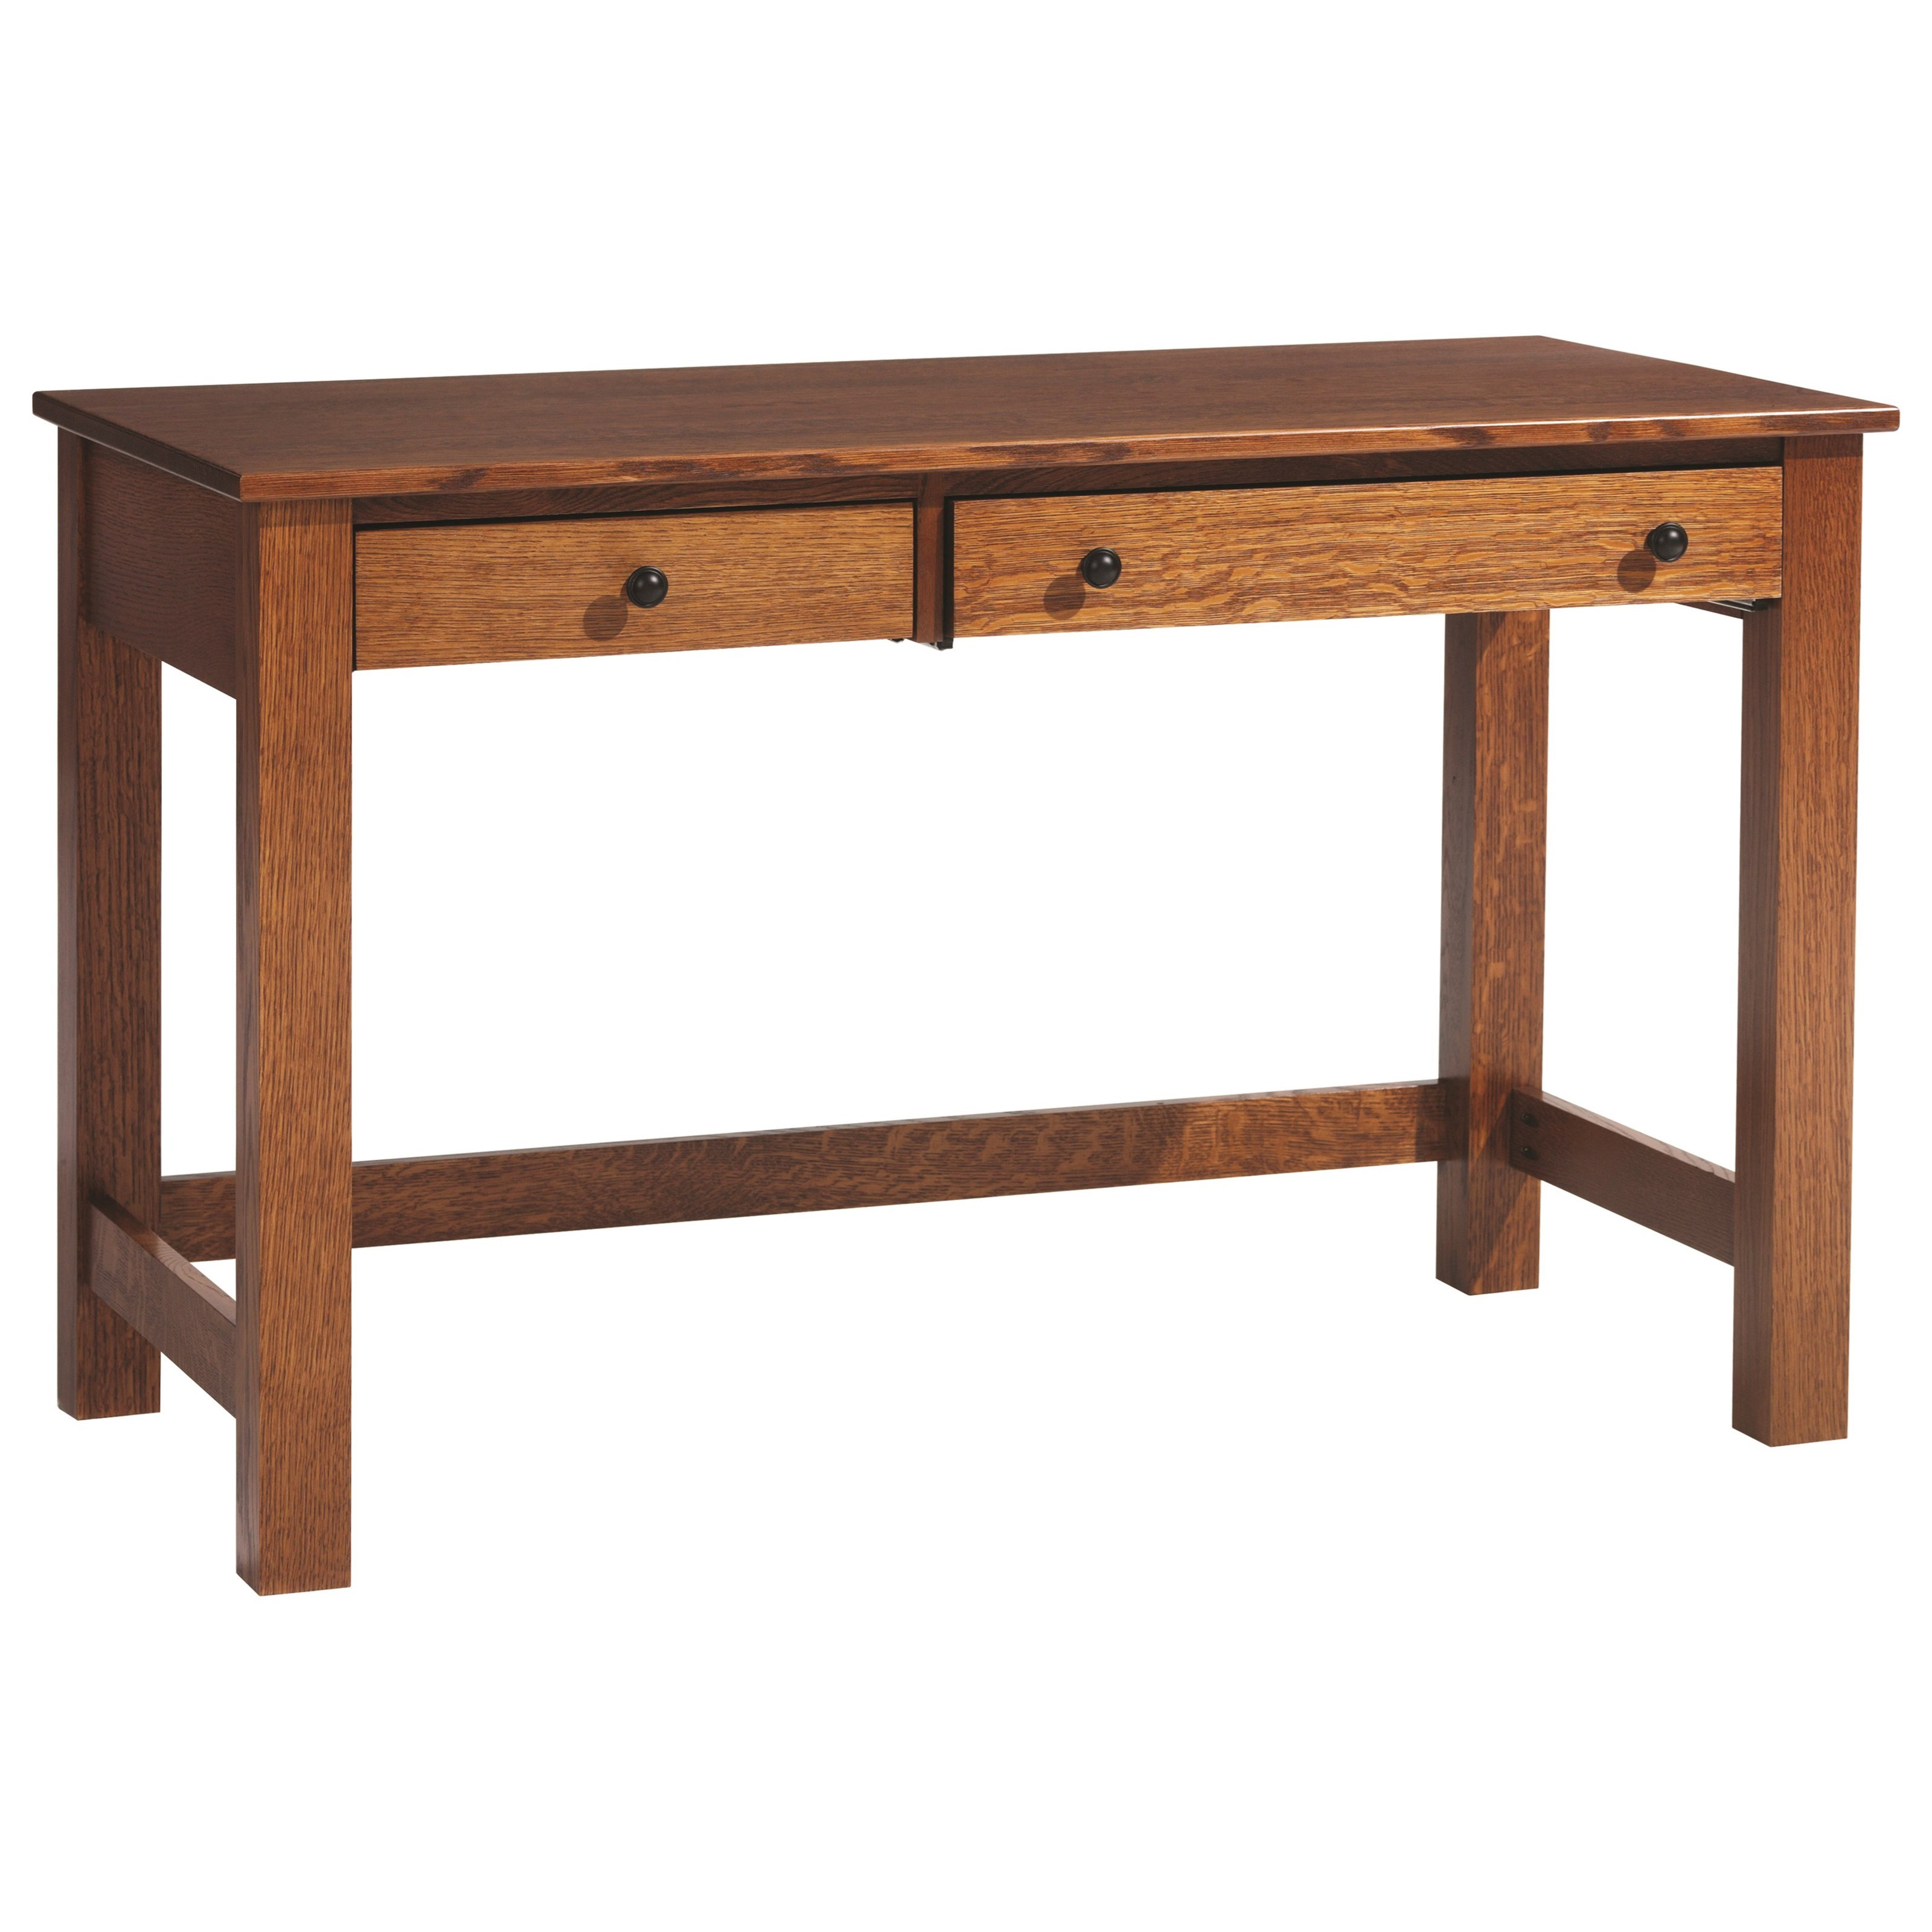 Rivertown Home Office Desk with Laptop Pull-Out Drawer by Y & T Woodcraft at Saugerties Furniture Mart